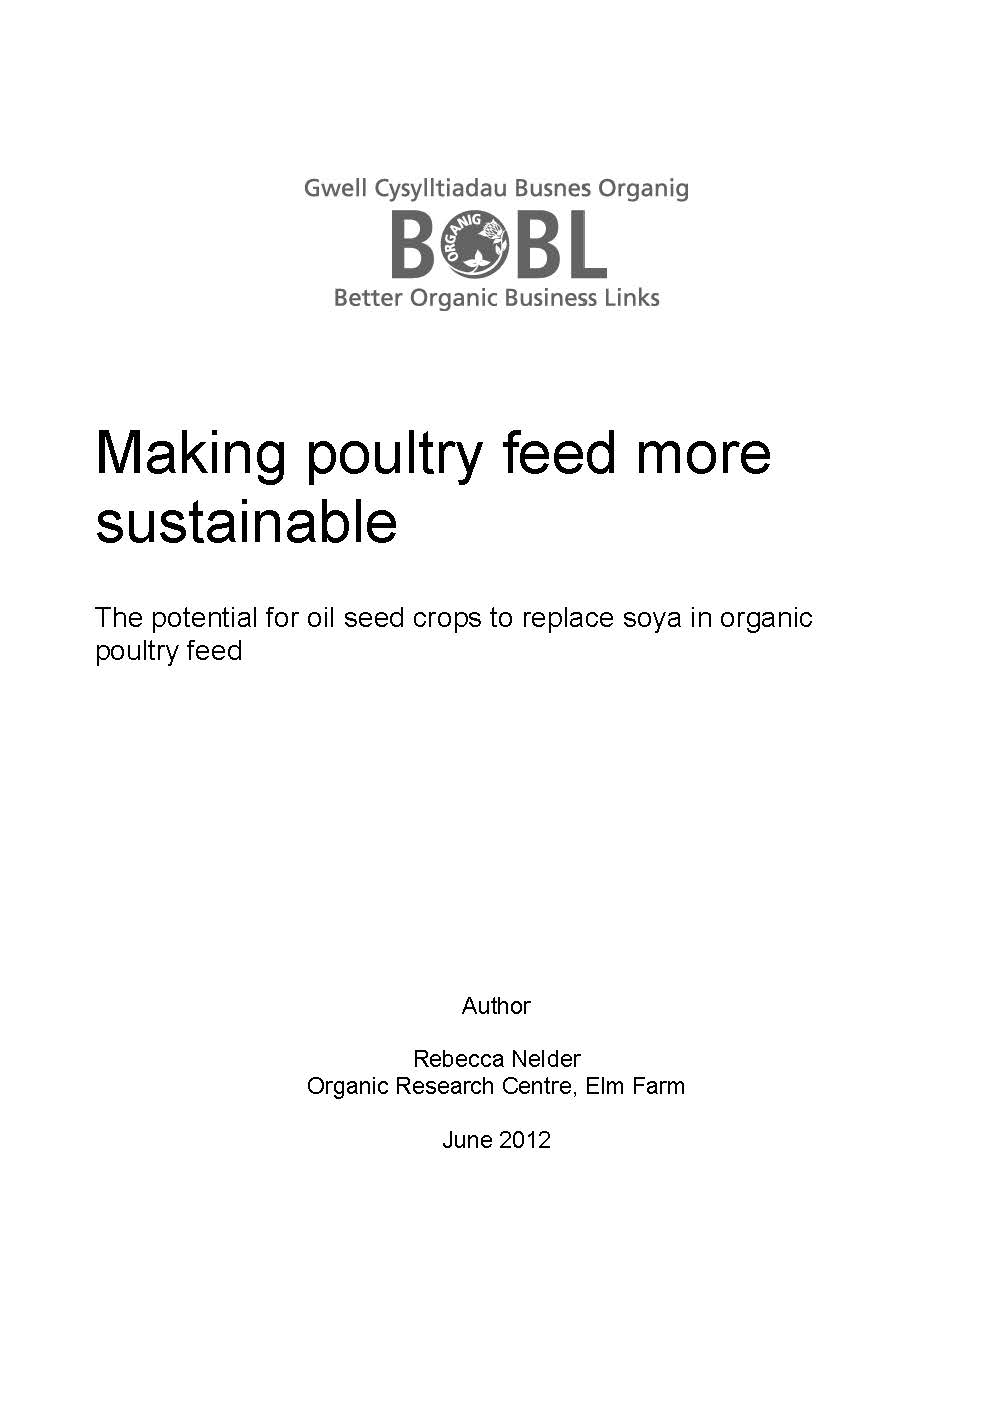 Making poultry feed more sustainable